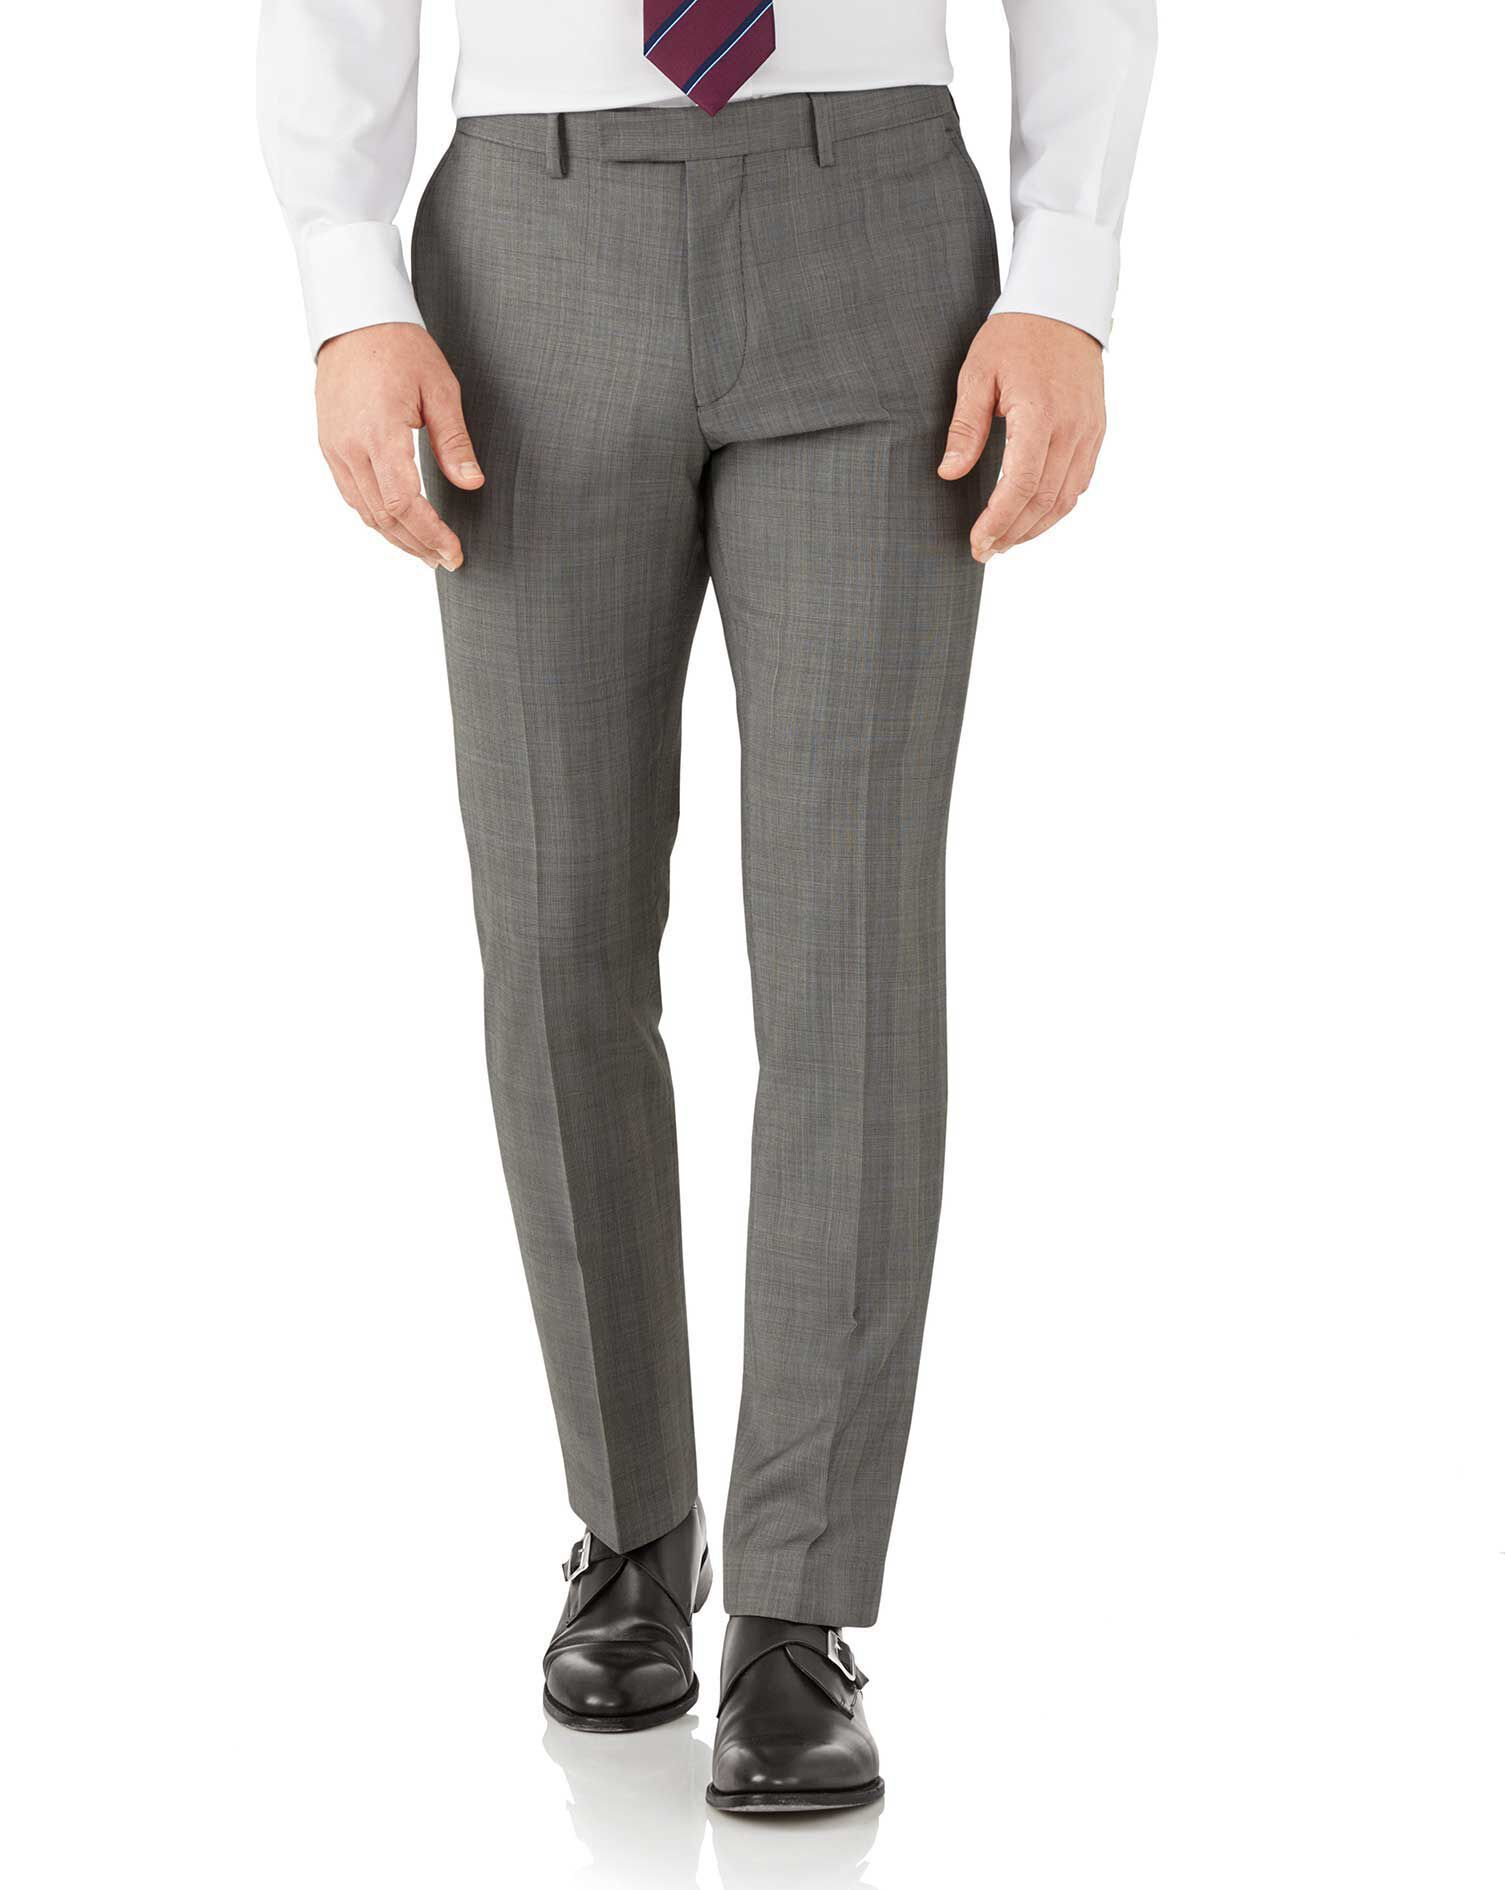 Silver Slim Fit Italian Sharkskin Luxury Check Suit Trousers Size W32 L30 by Charles Tyrwhitt